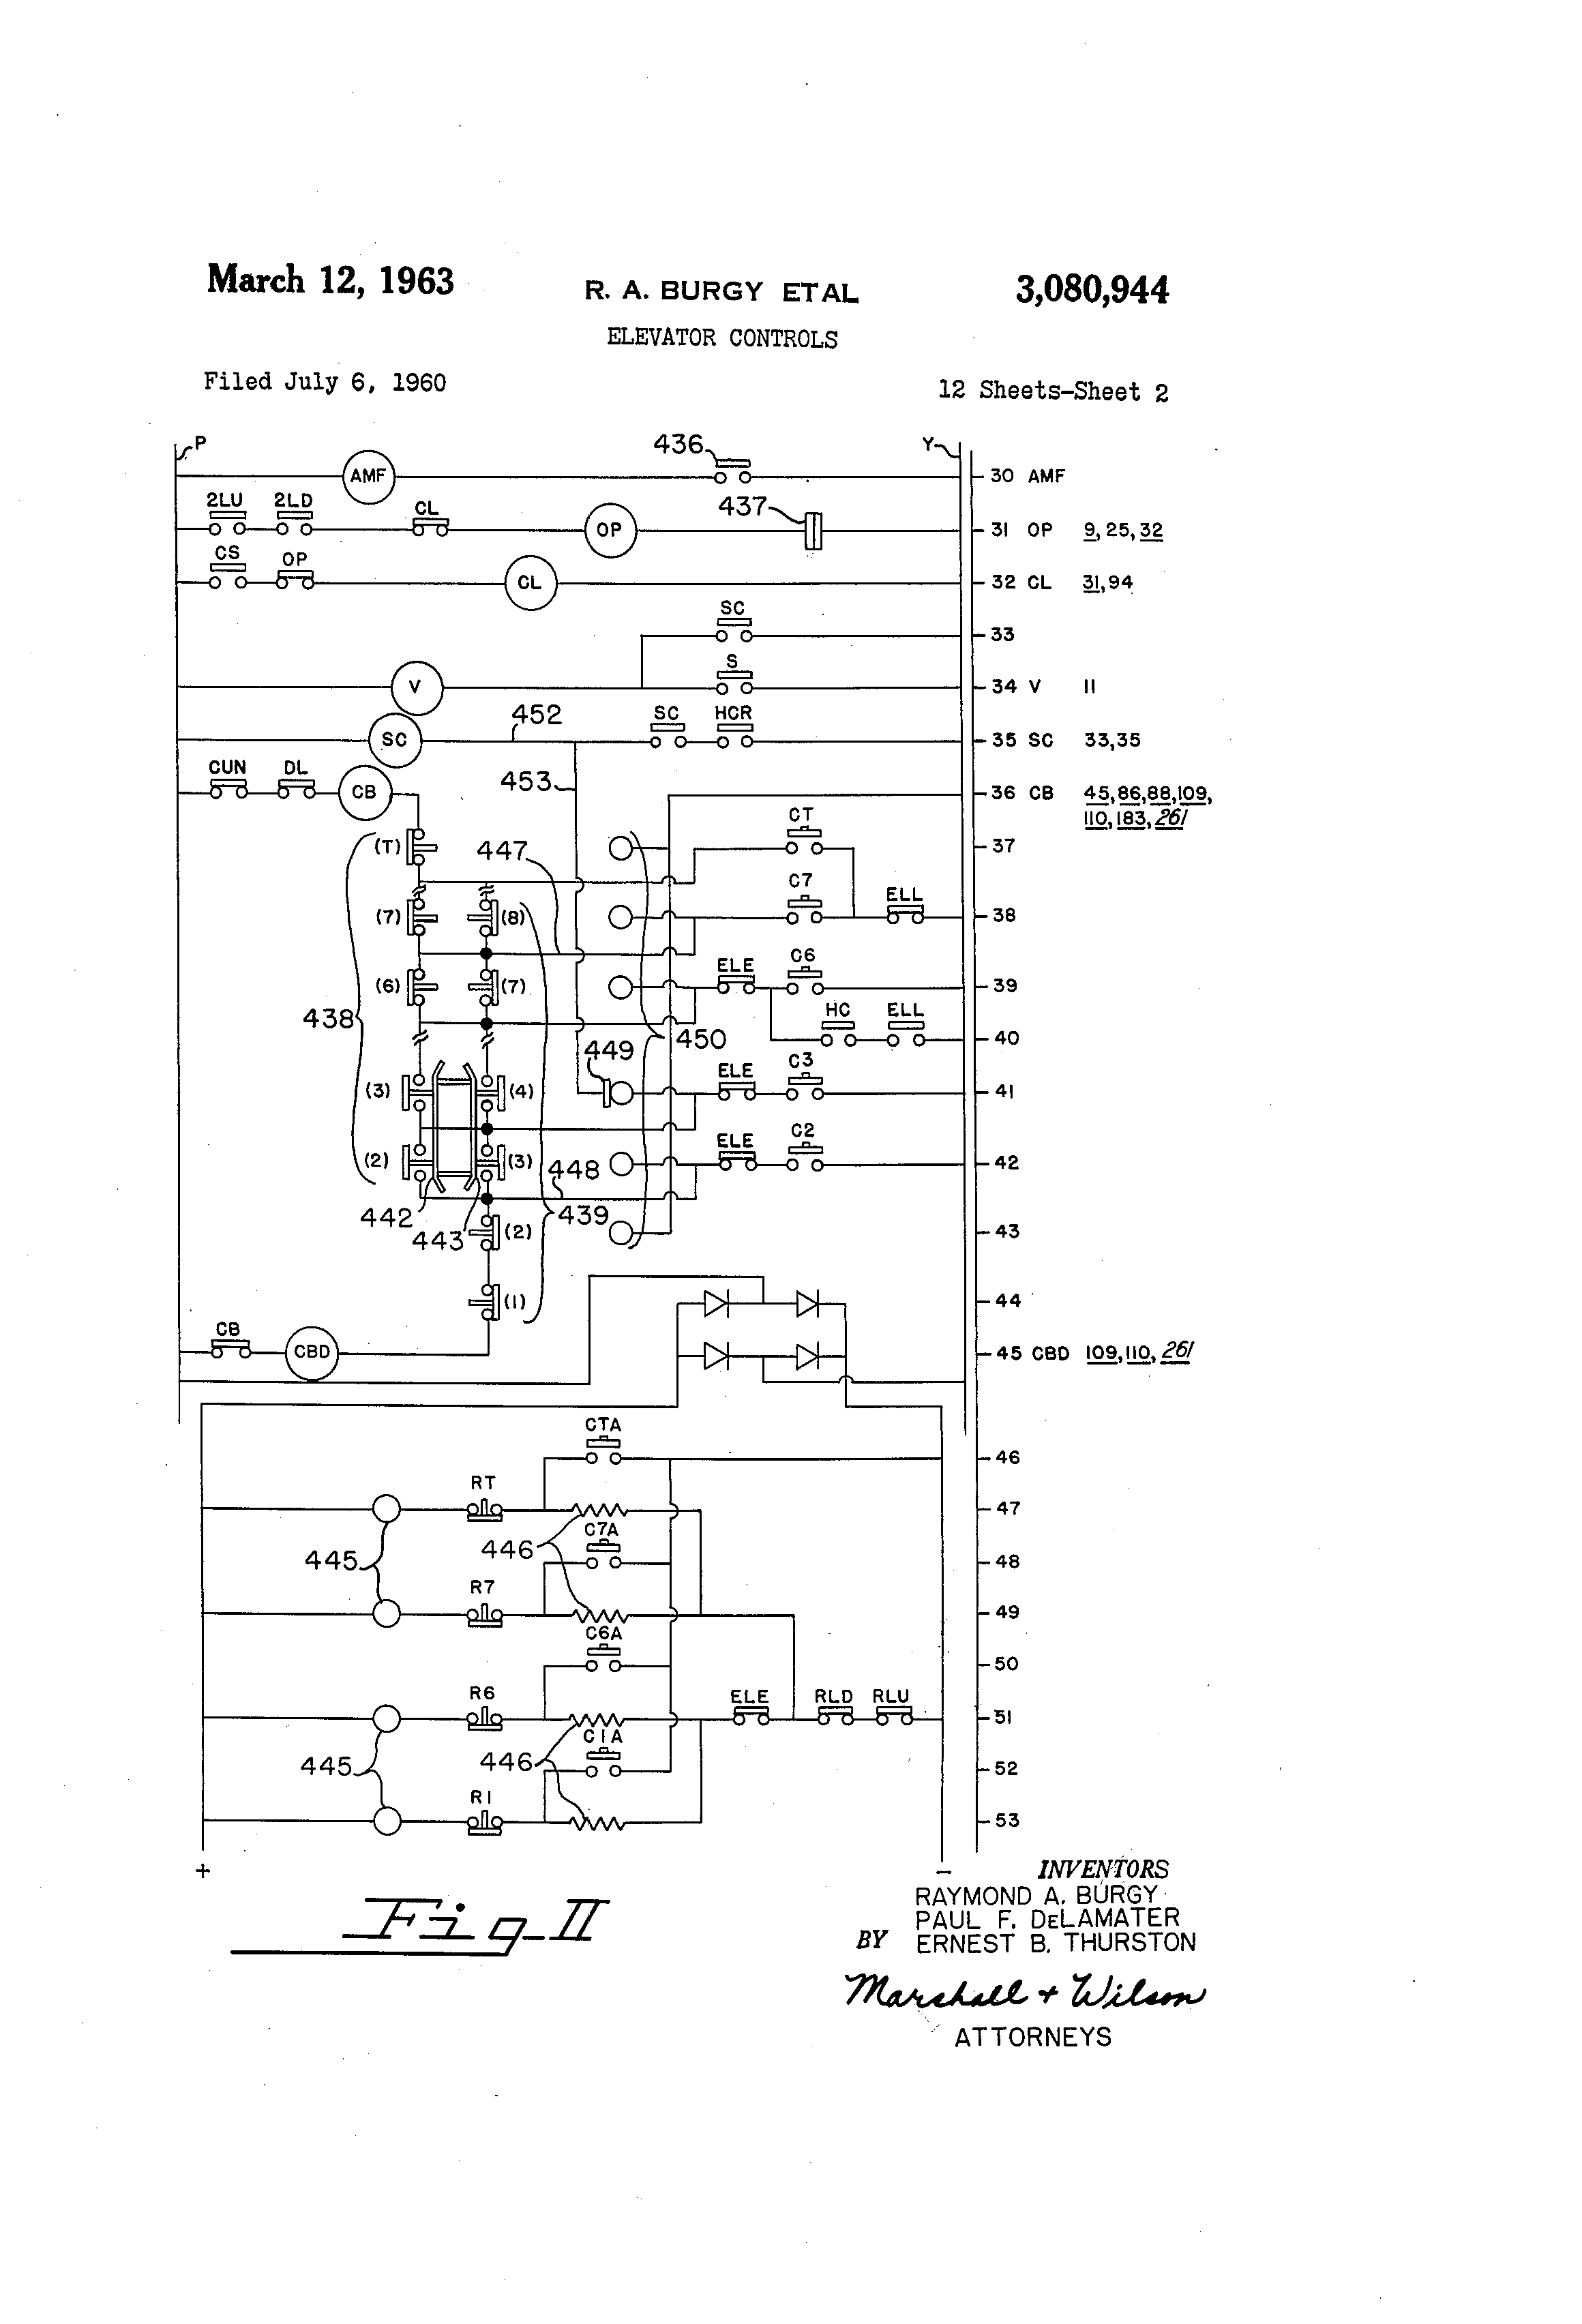 dover elevator wiring diagram   29 wiring diagram images